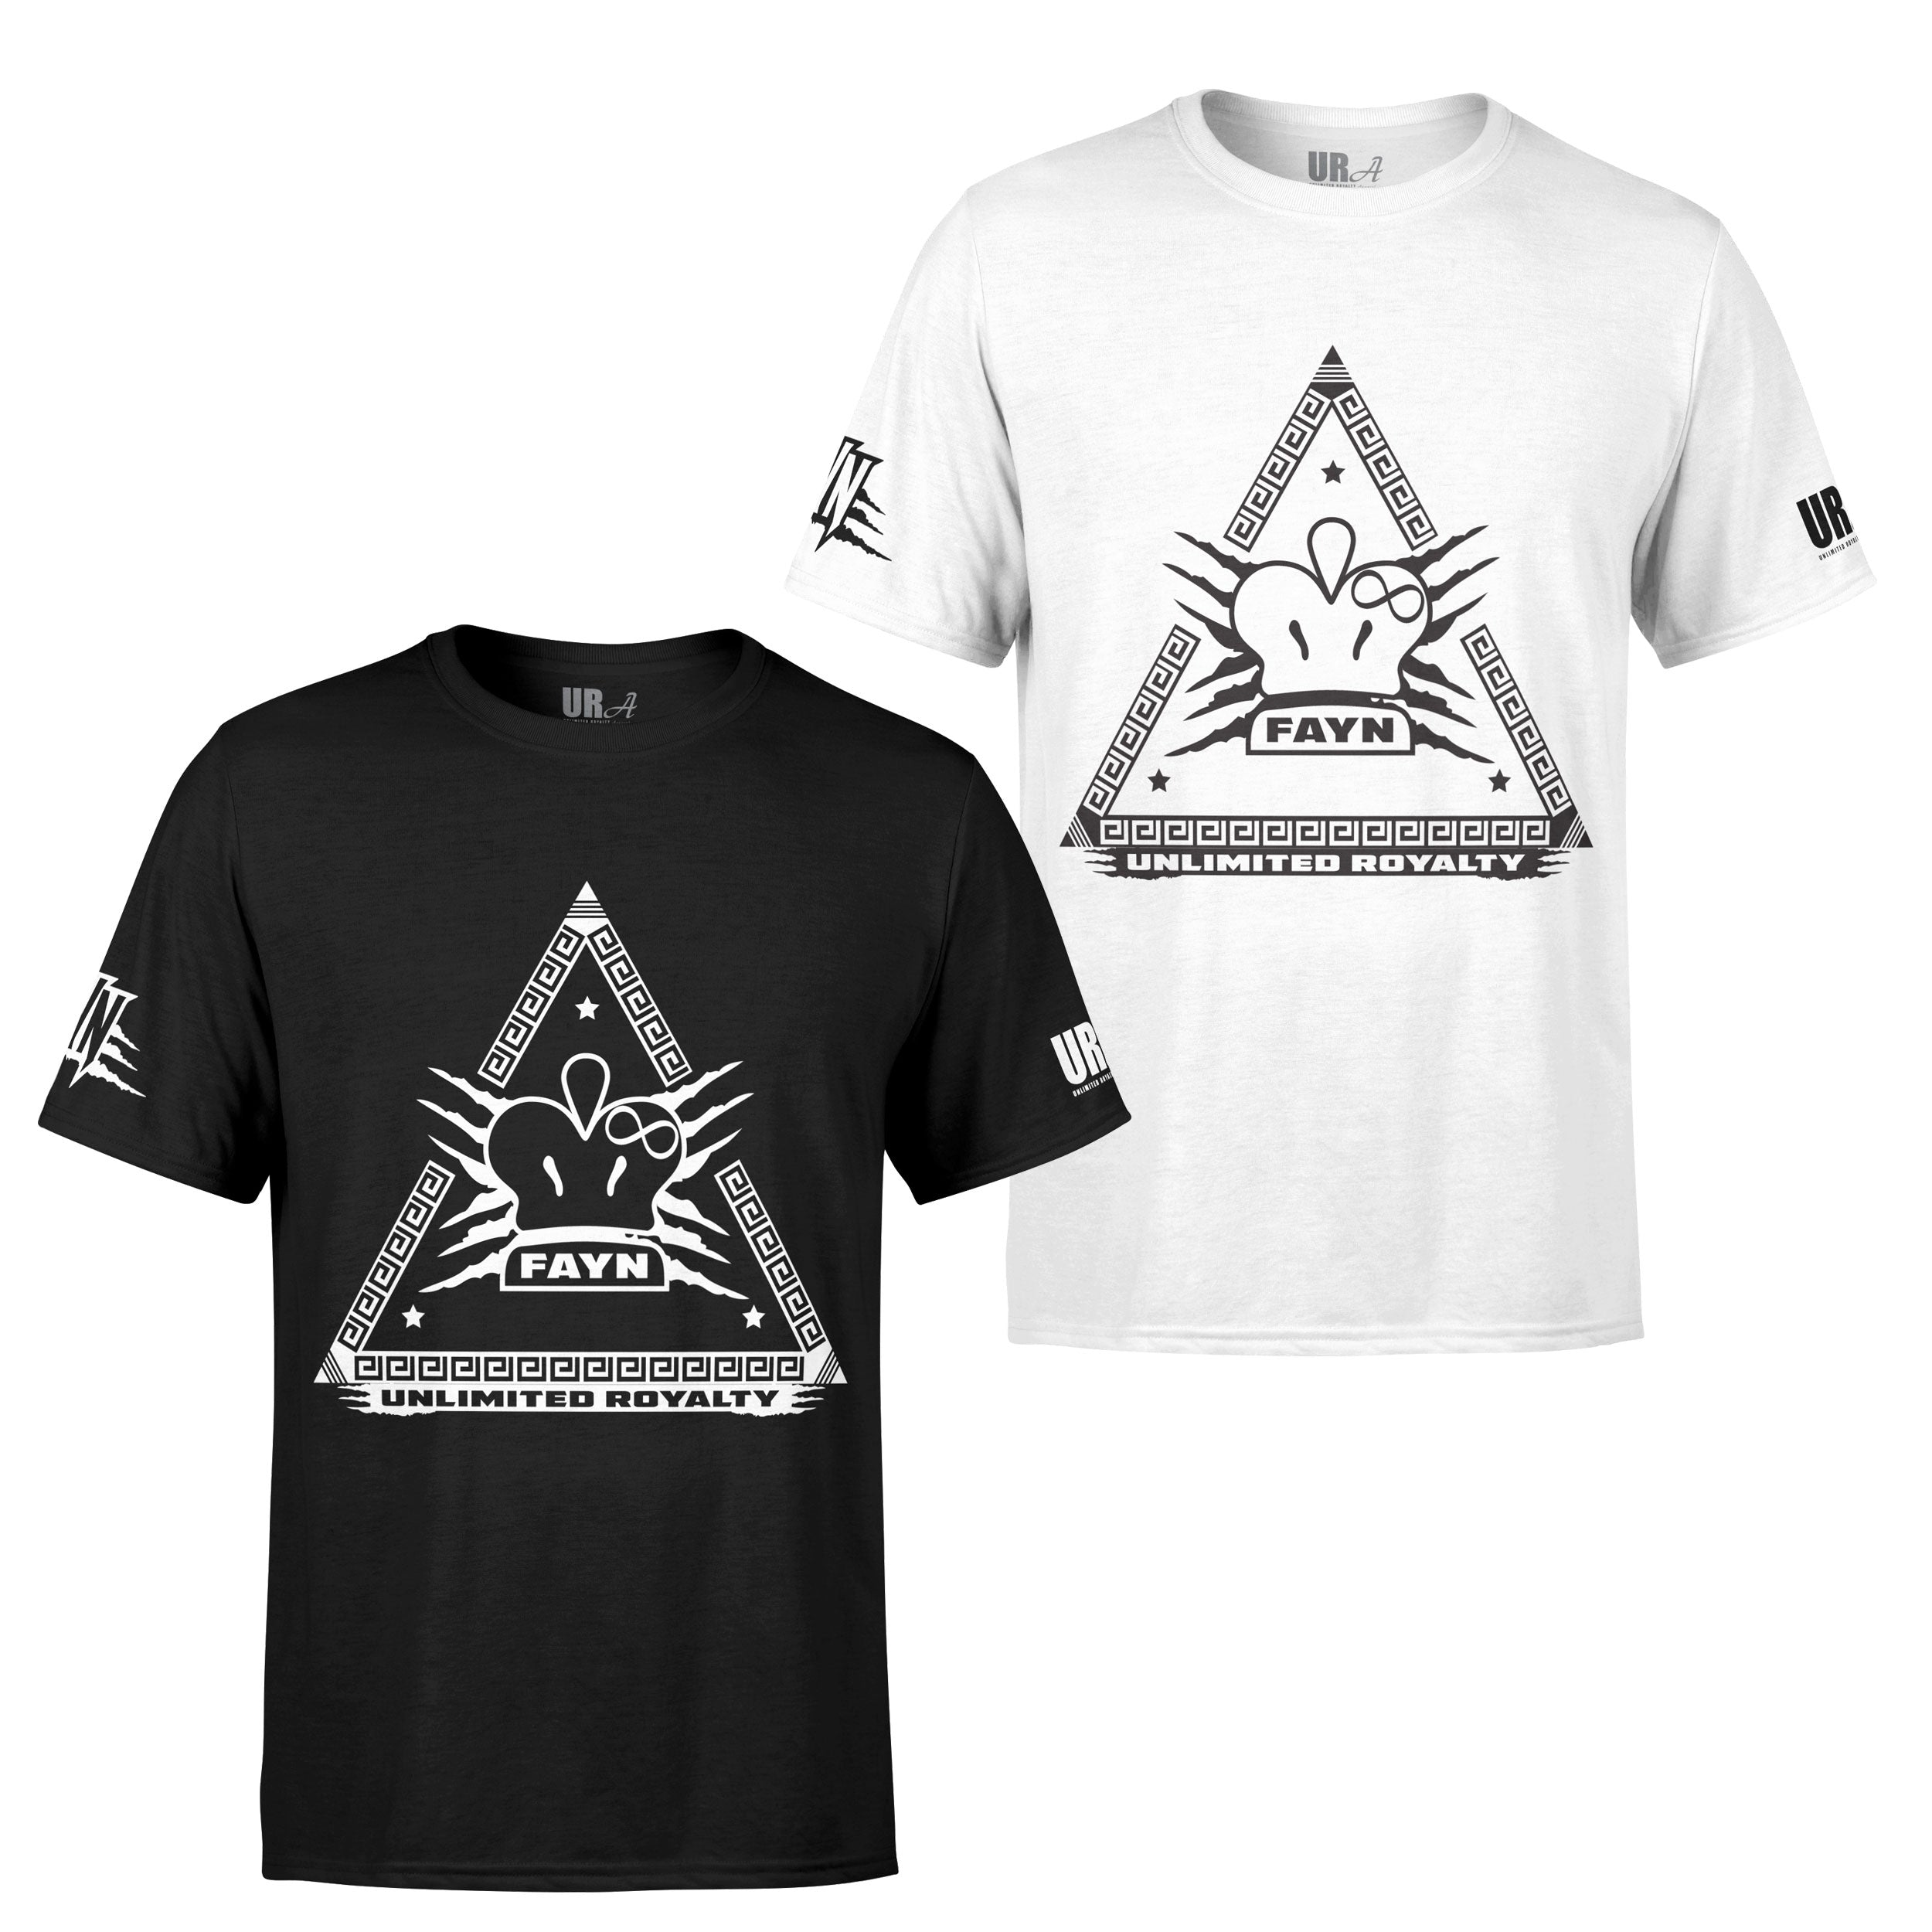 URA FAYN TEE - Unlimited Royalty Apparel